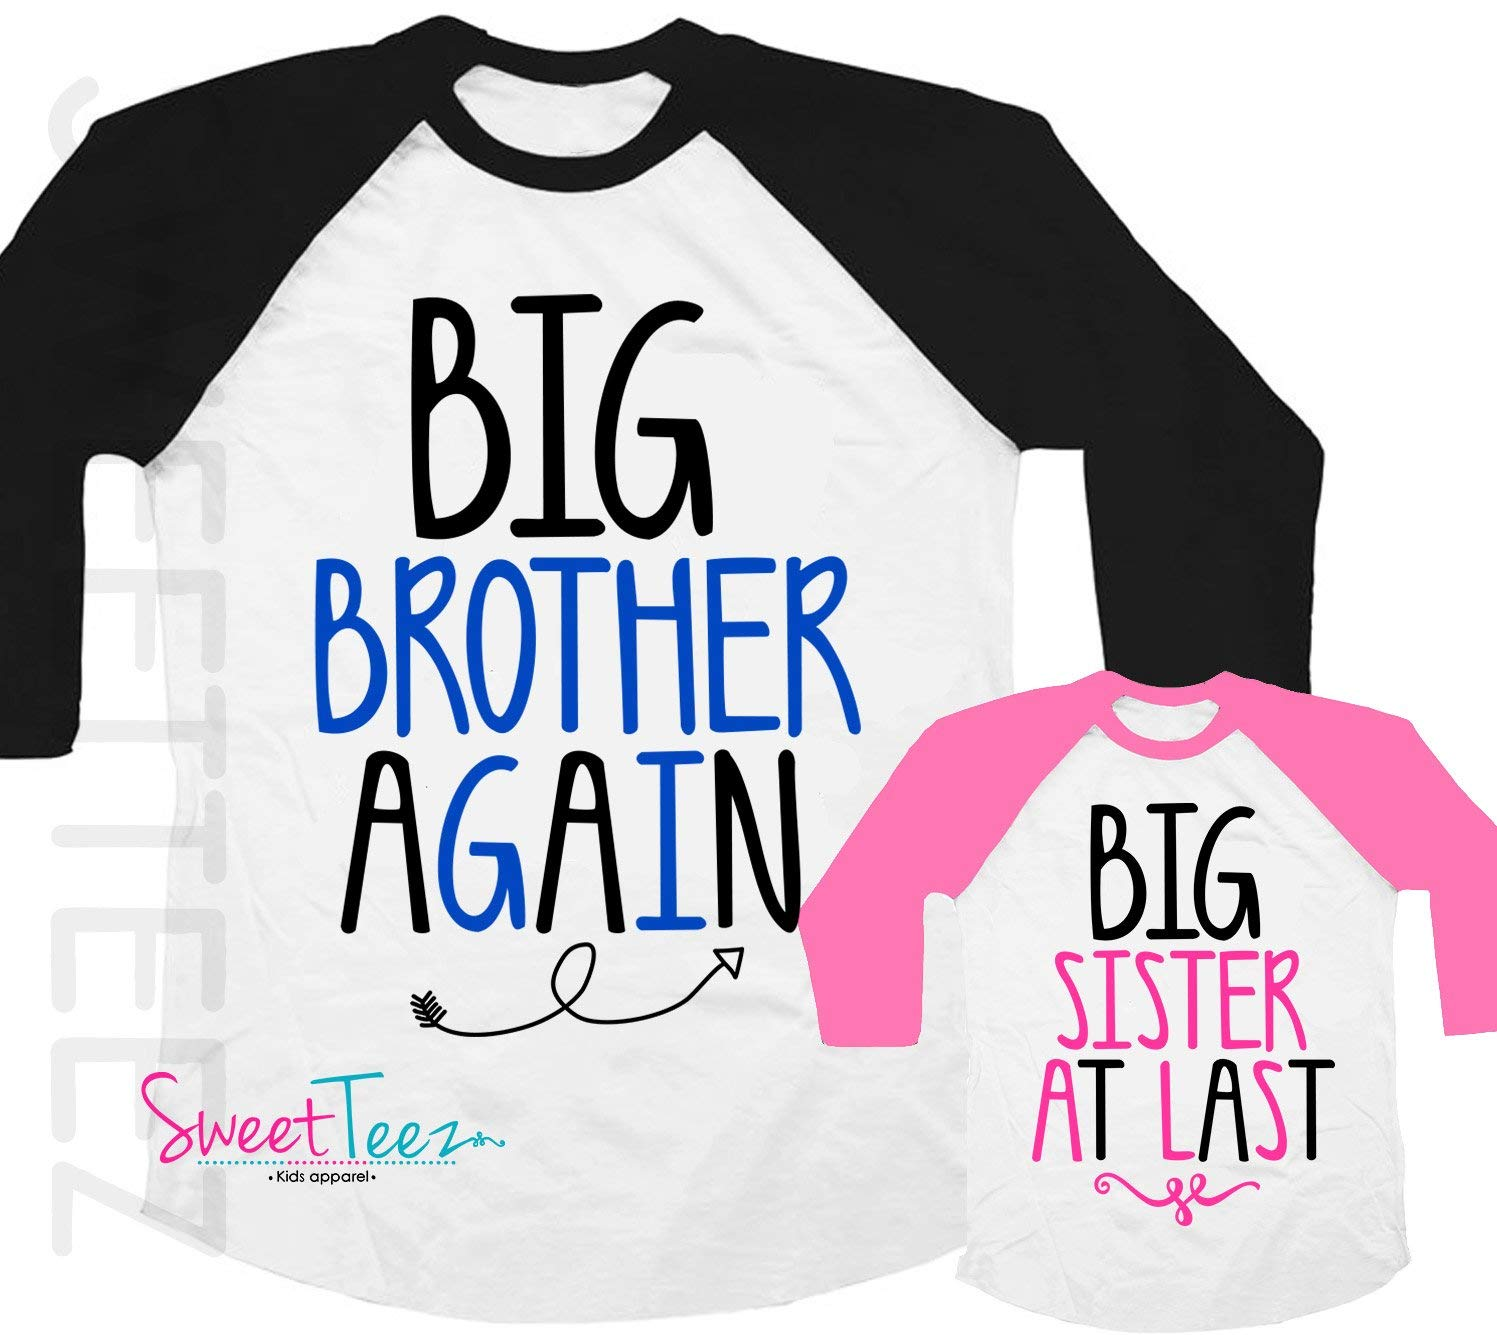 494e6d849e839 Amazon.com: Big Brother Again Big Sister at last Shirt Set Shirt Black  Raglan Matching Shirts Gift Pregnancy Announcement: Handmade